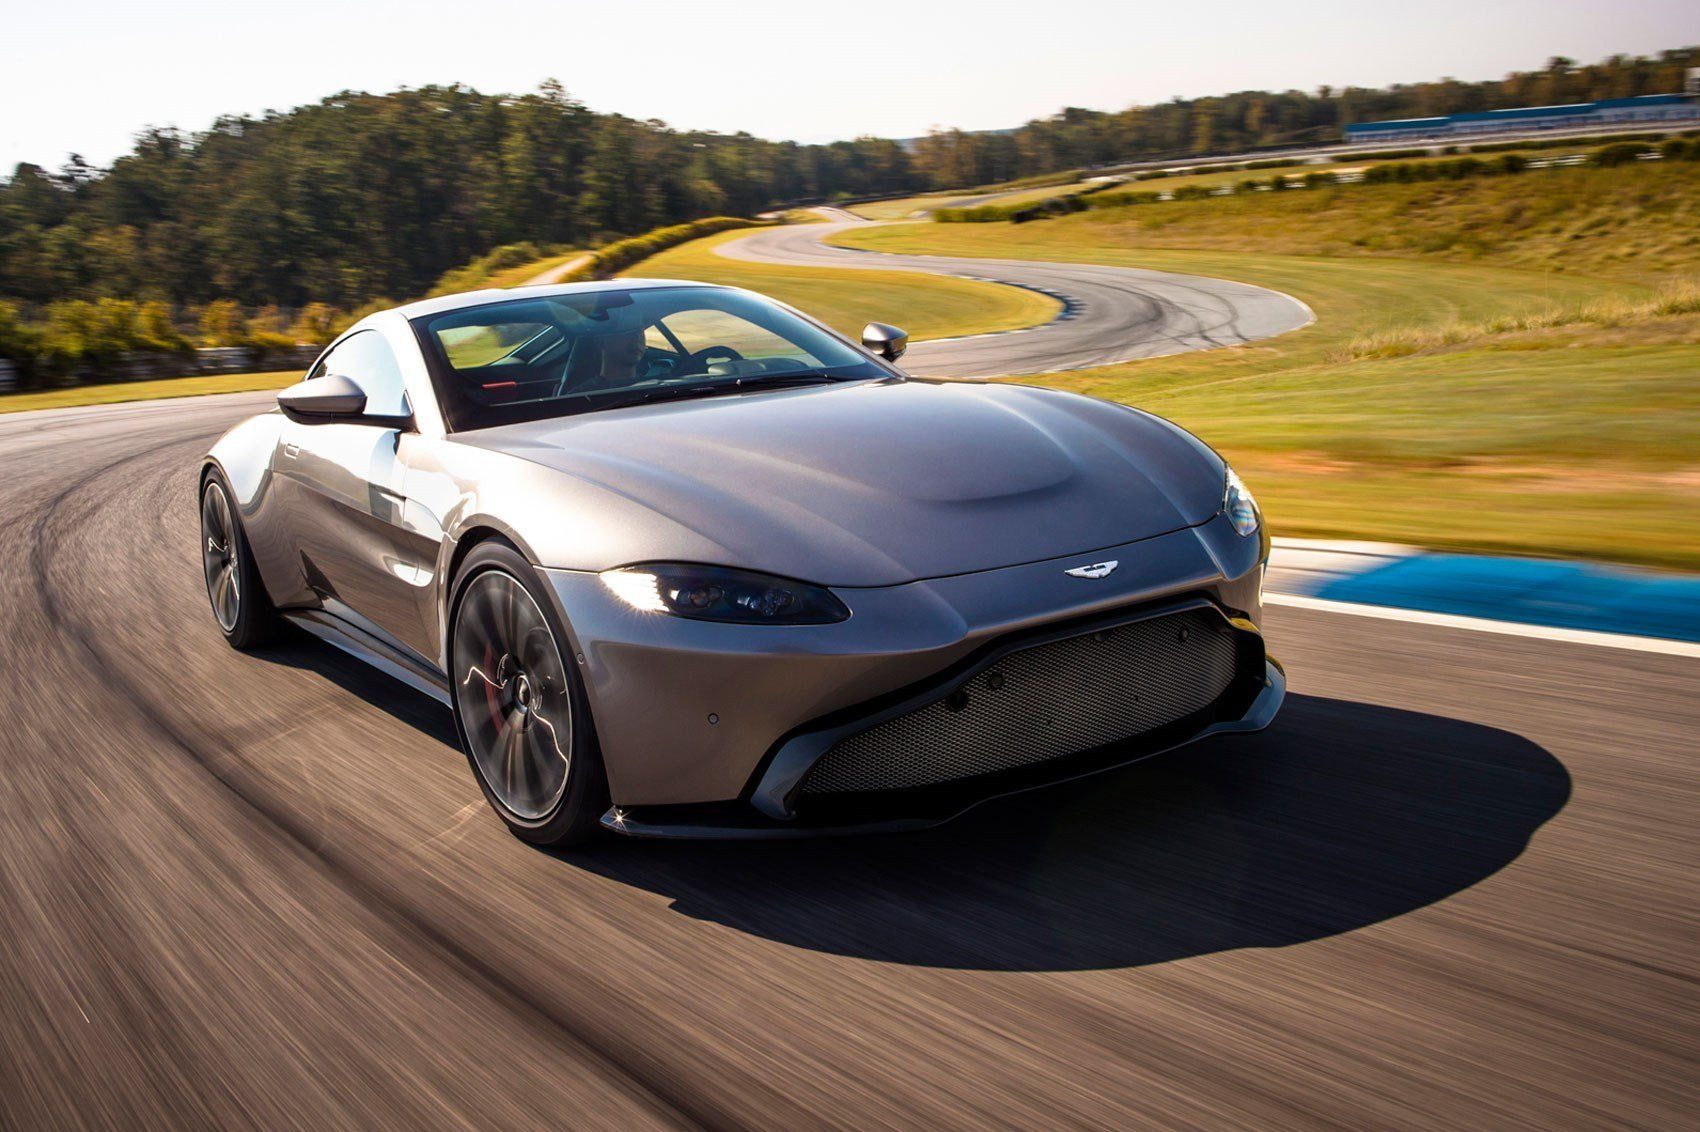 Latest The New 2018 Aston Martin Vantage Revealed In Pictures Free Download